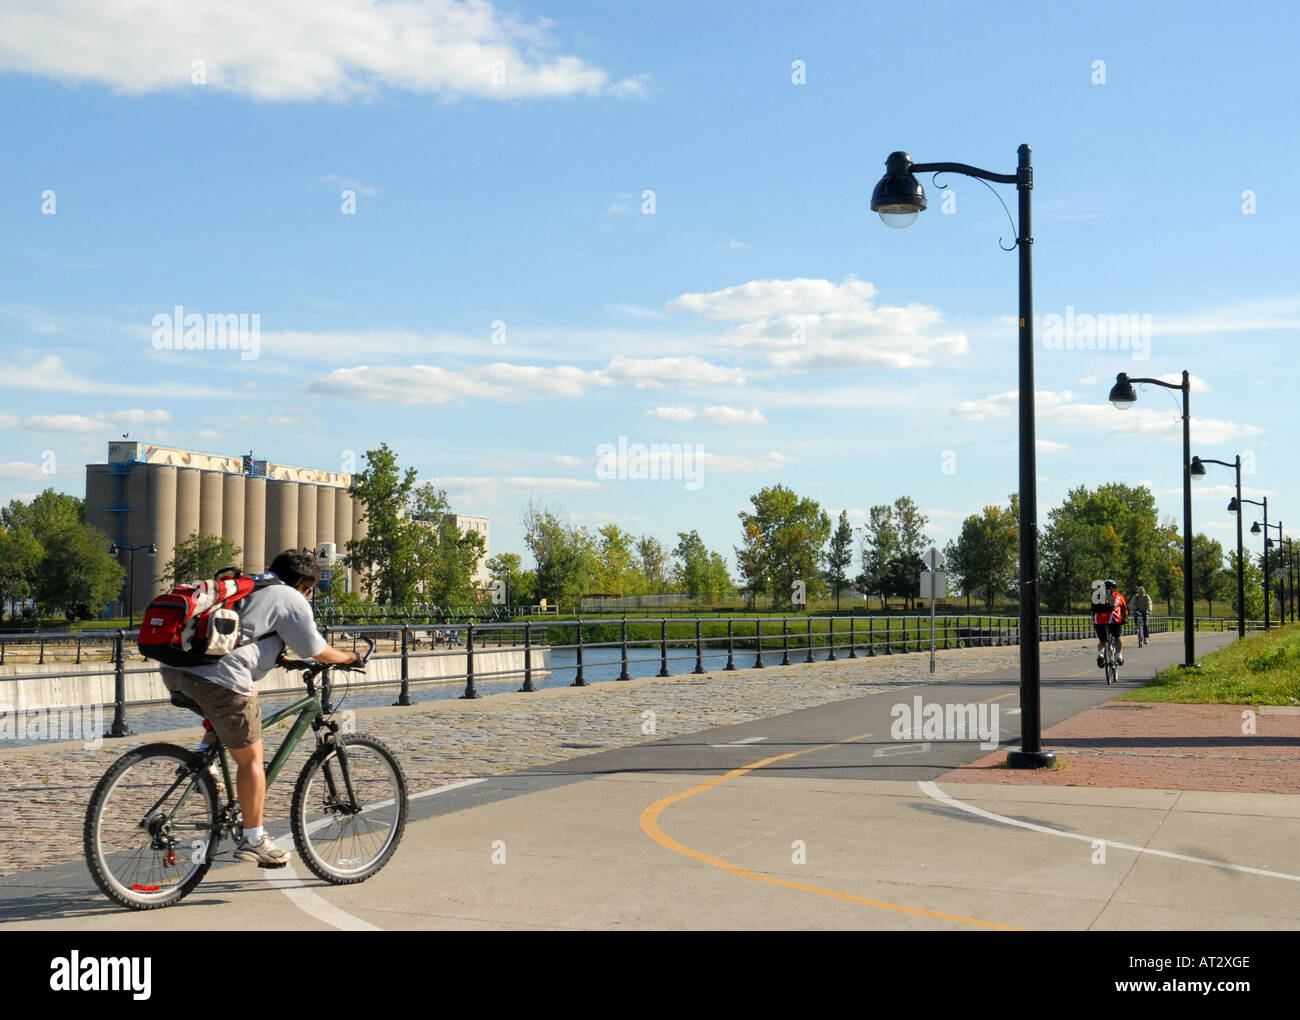 People Cycling next to canal Lachine city of Montreal Province of Quebec Canada - Stock Image